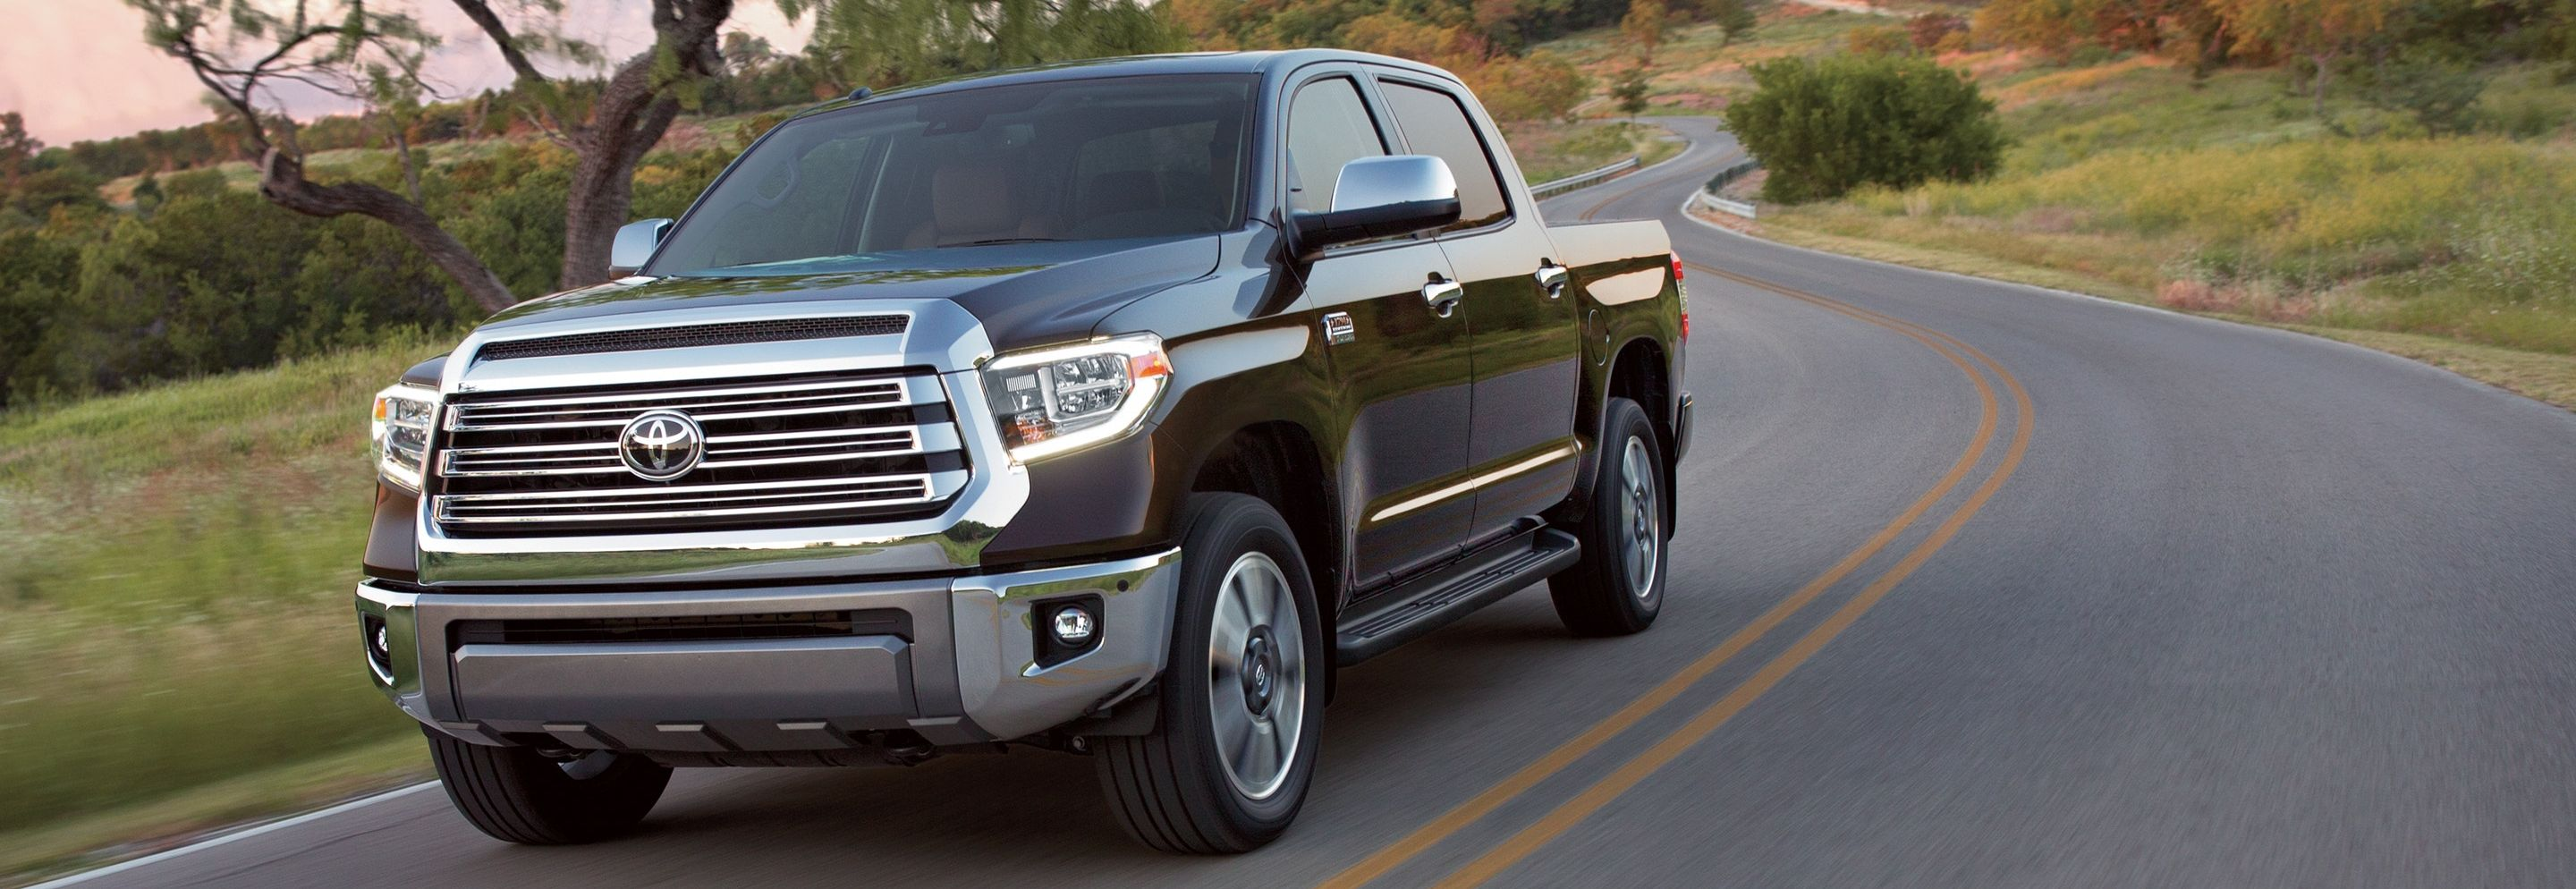 2019 Toyota Tundra for Sale in Kansas City, MO